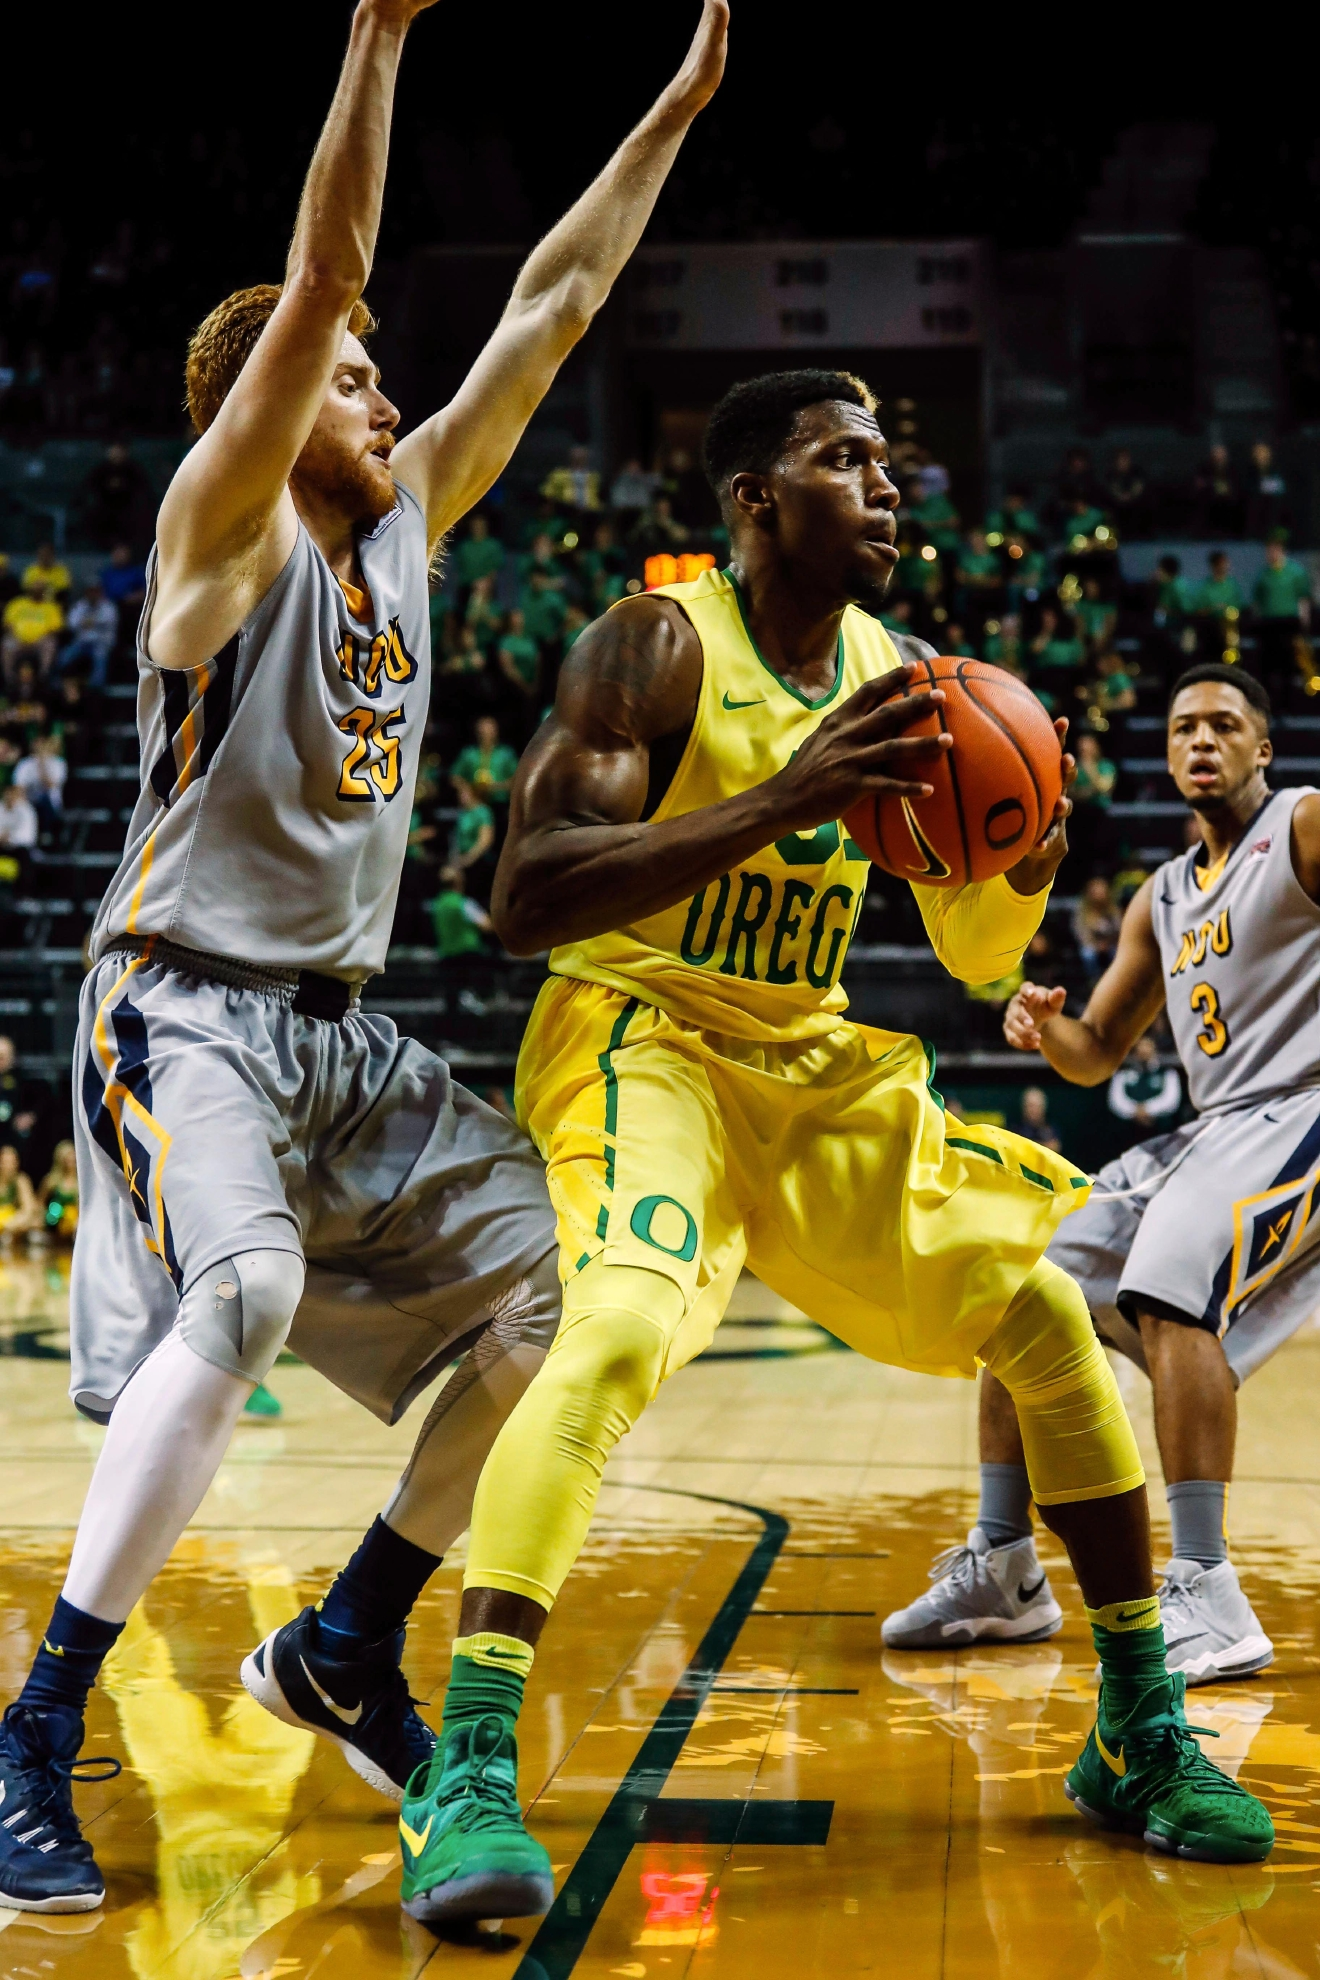 Oregon Ducks guard Dylan Ennis (31), pulls a rebound under pressure from Northwest Christian's Jack Hackman in an NCAA college basketball exhibition game in Eugene, Ore. Oregon defeated Northwest Christian University 86-51. (AP Photo/Thomas Boyd)